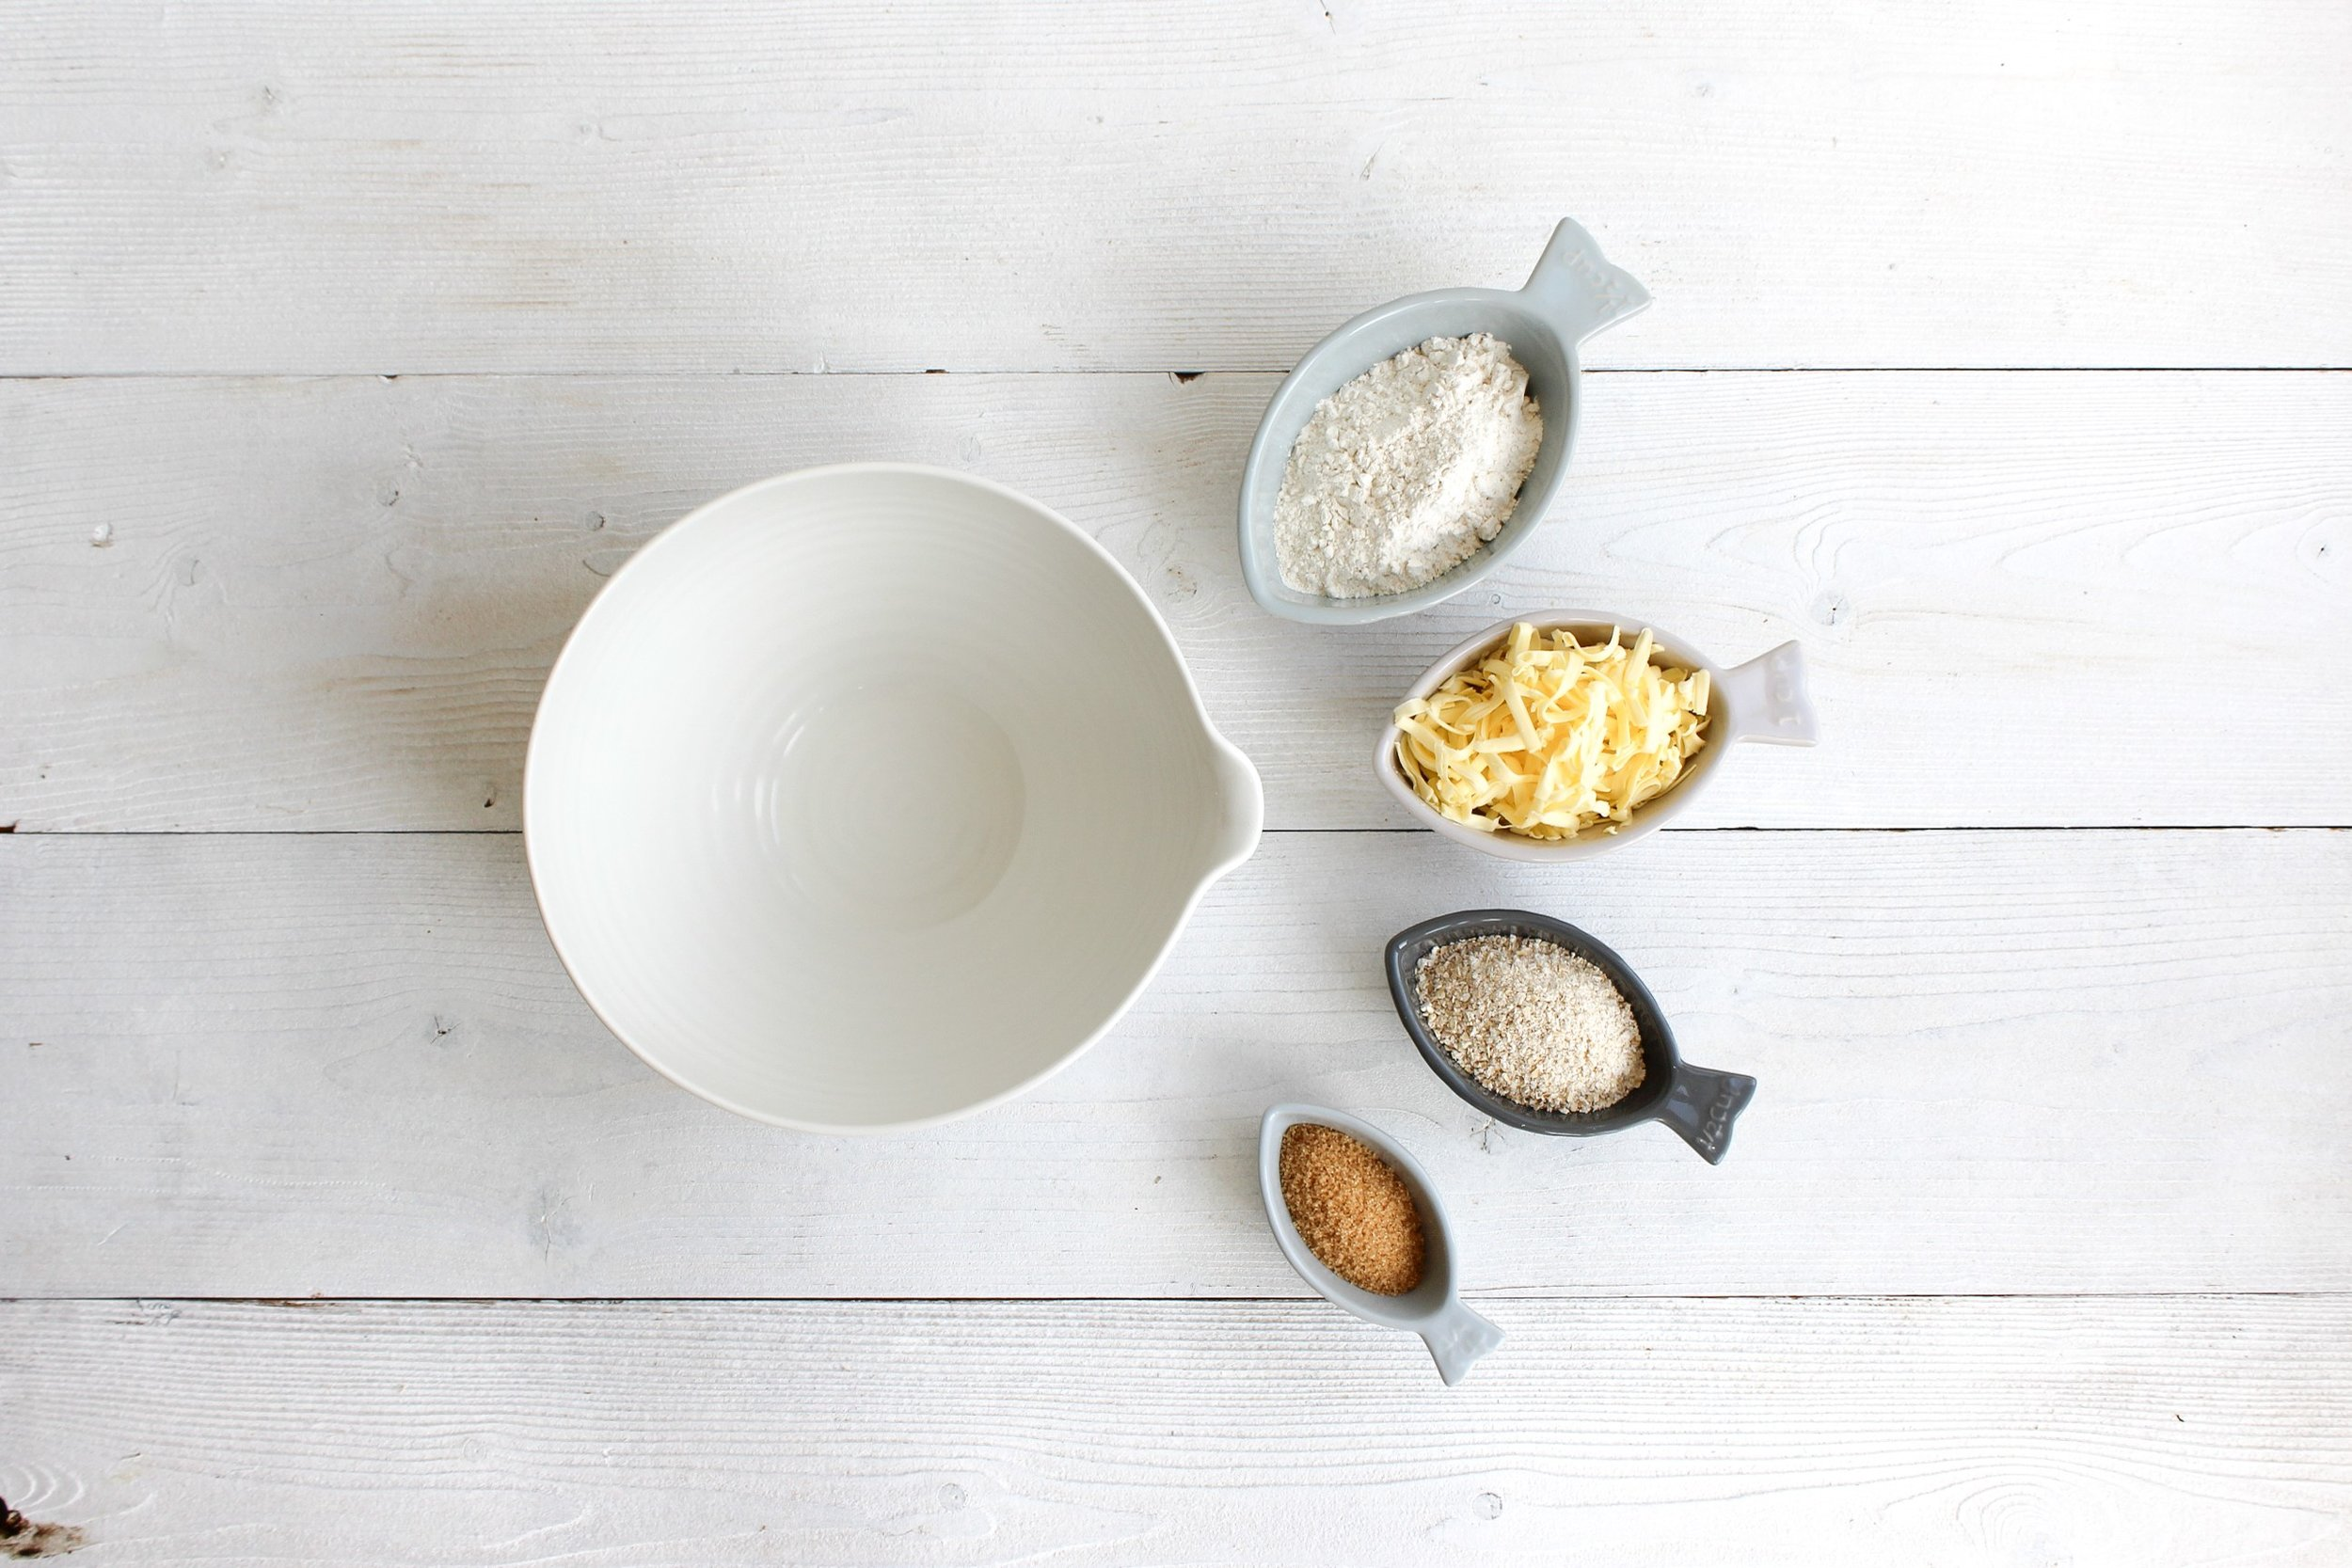 Weigh and prepare crumble topping ingredients